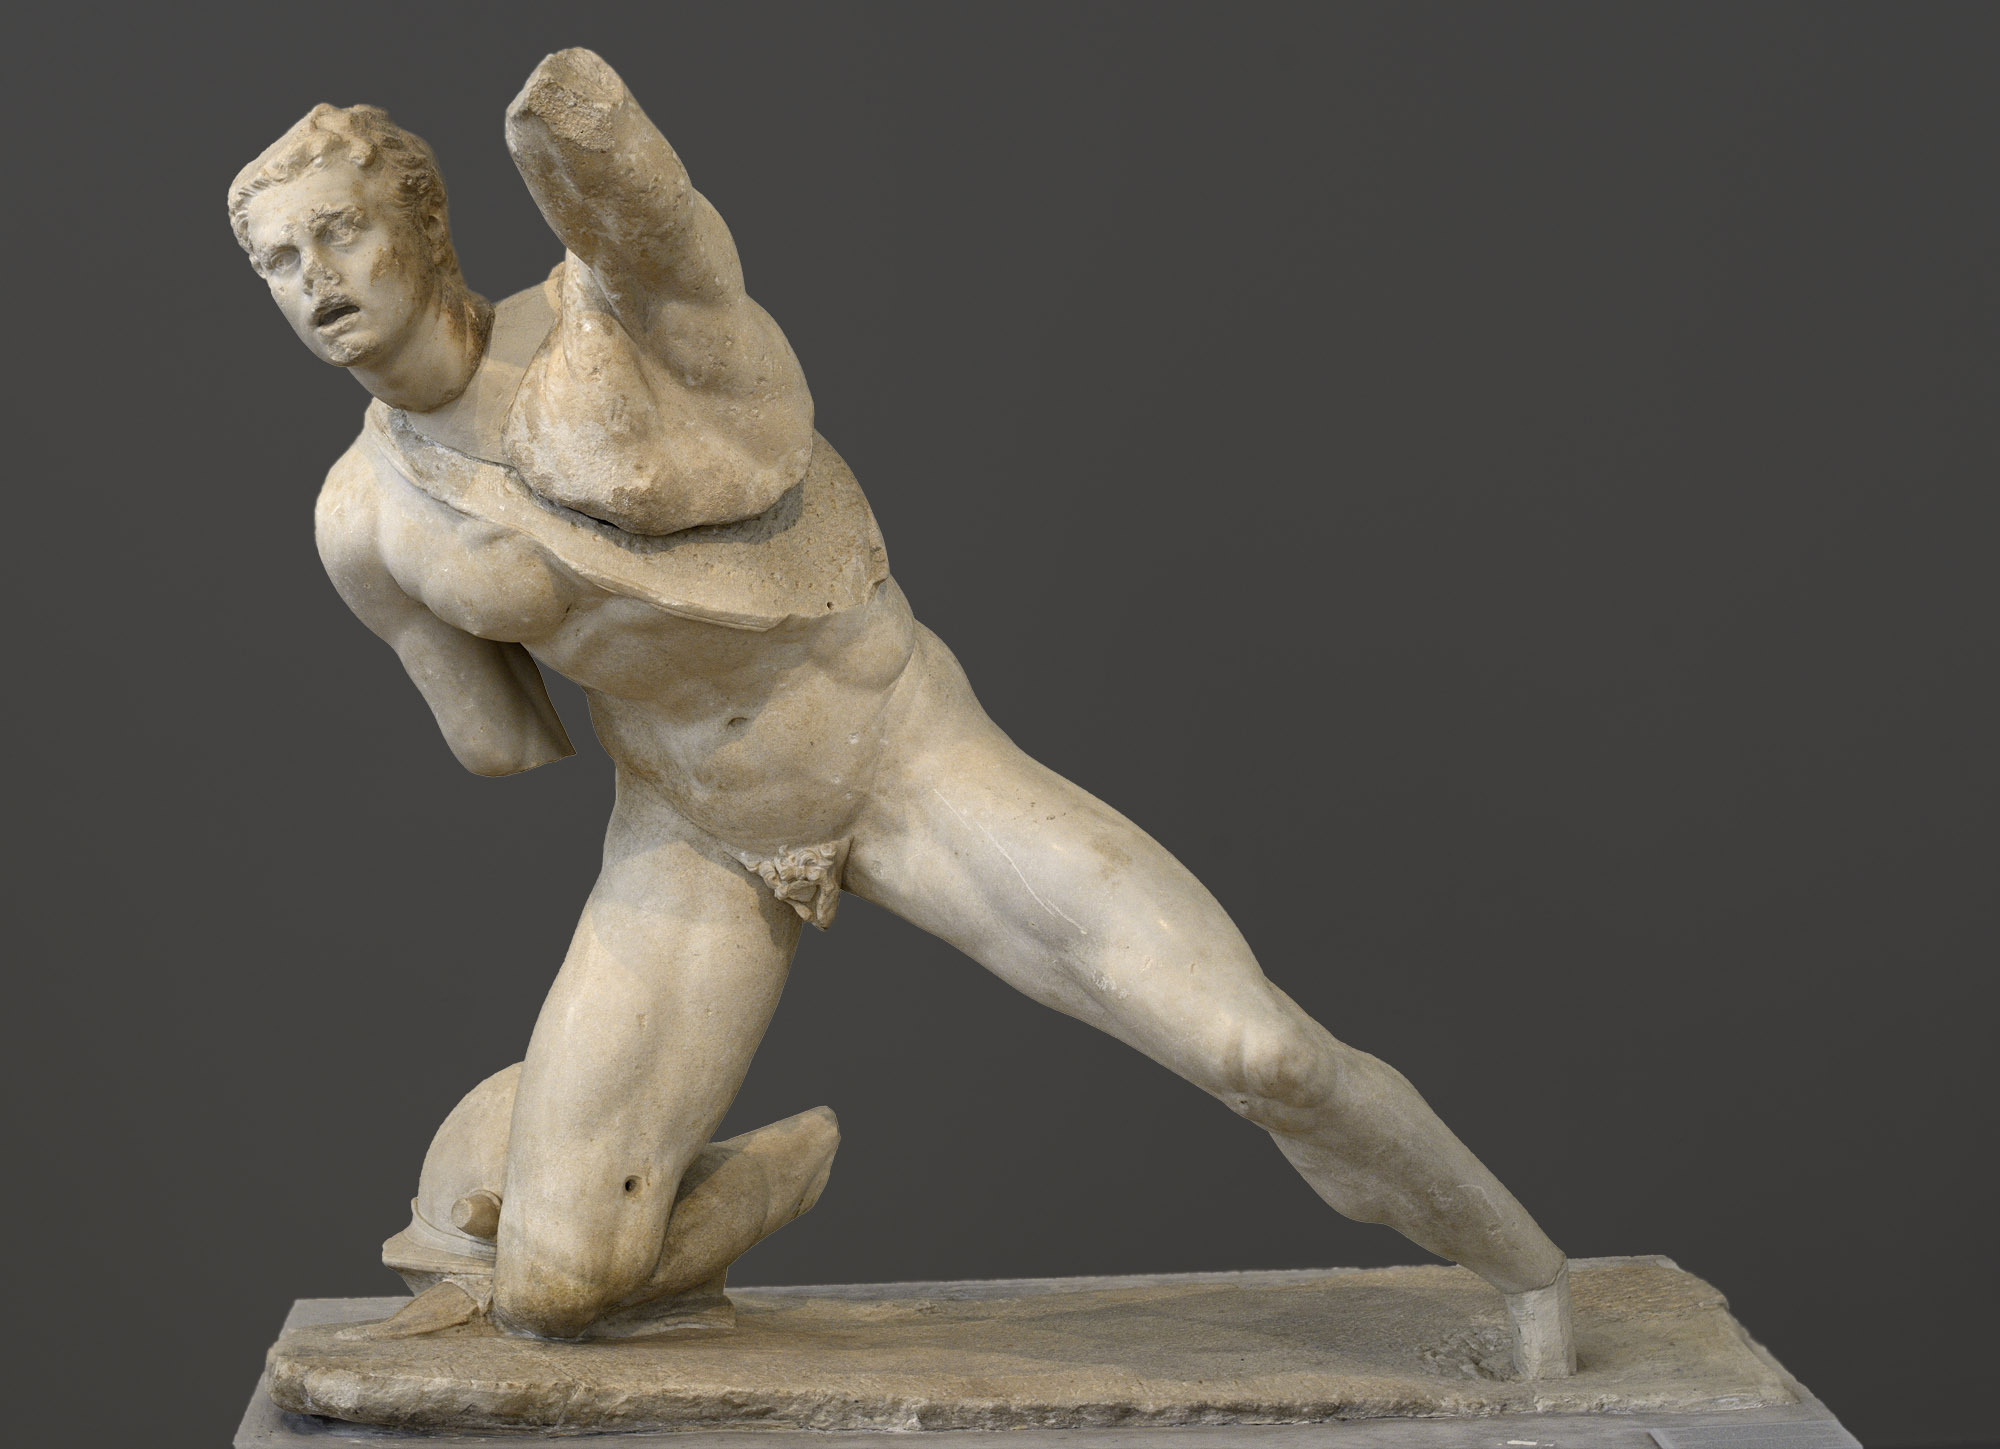 Fighting Gaul. Parian marble. Ca. 100 BCE. Inv. No. 247. Athens, National Archaeological Museum